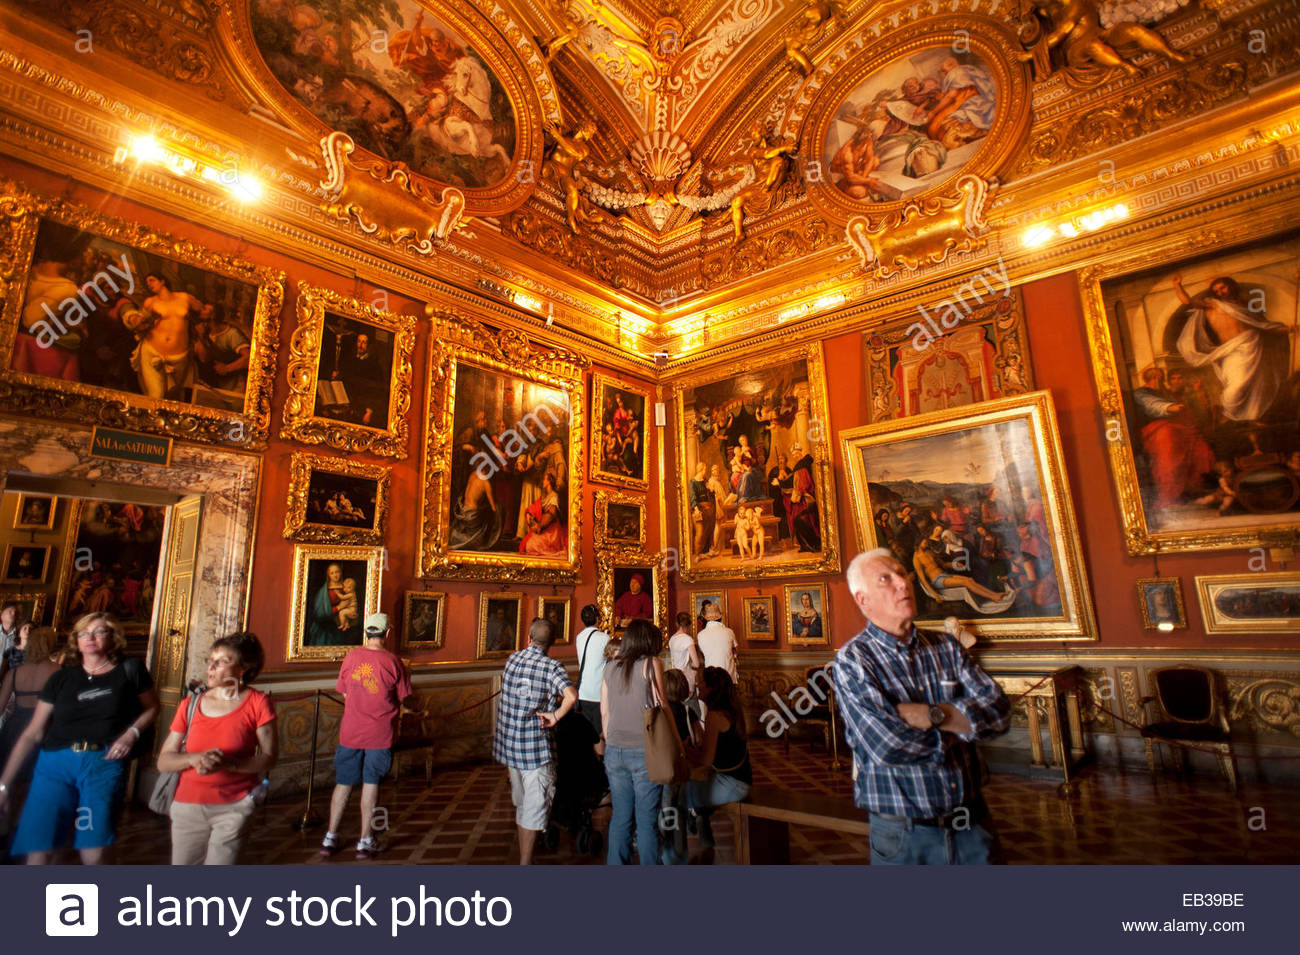 Tourists look at art in the Sala di Saturno in the Palazzo Pitti. - Stock Image